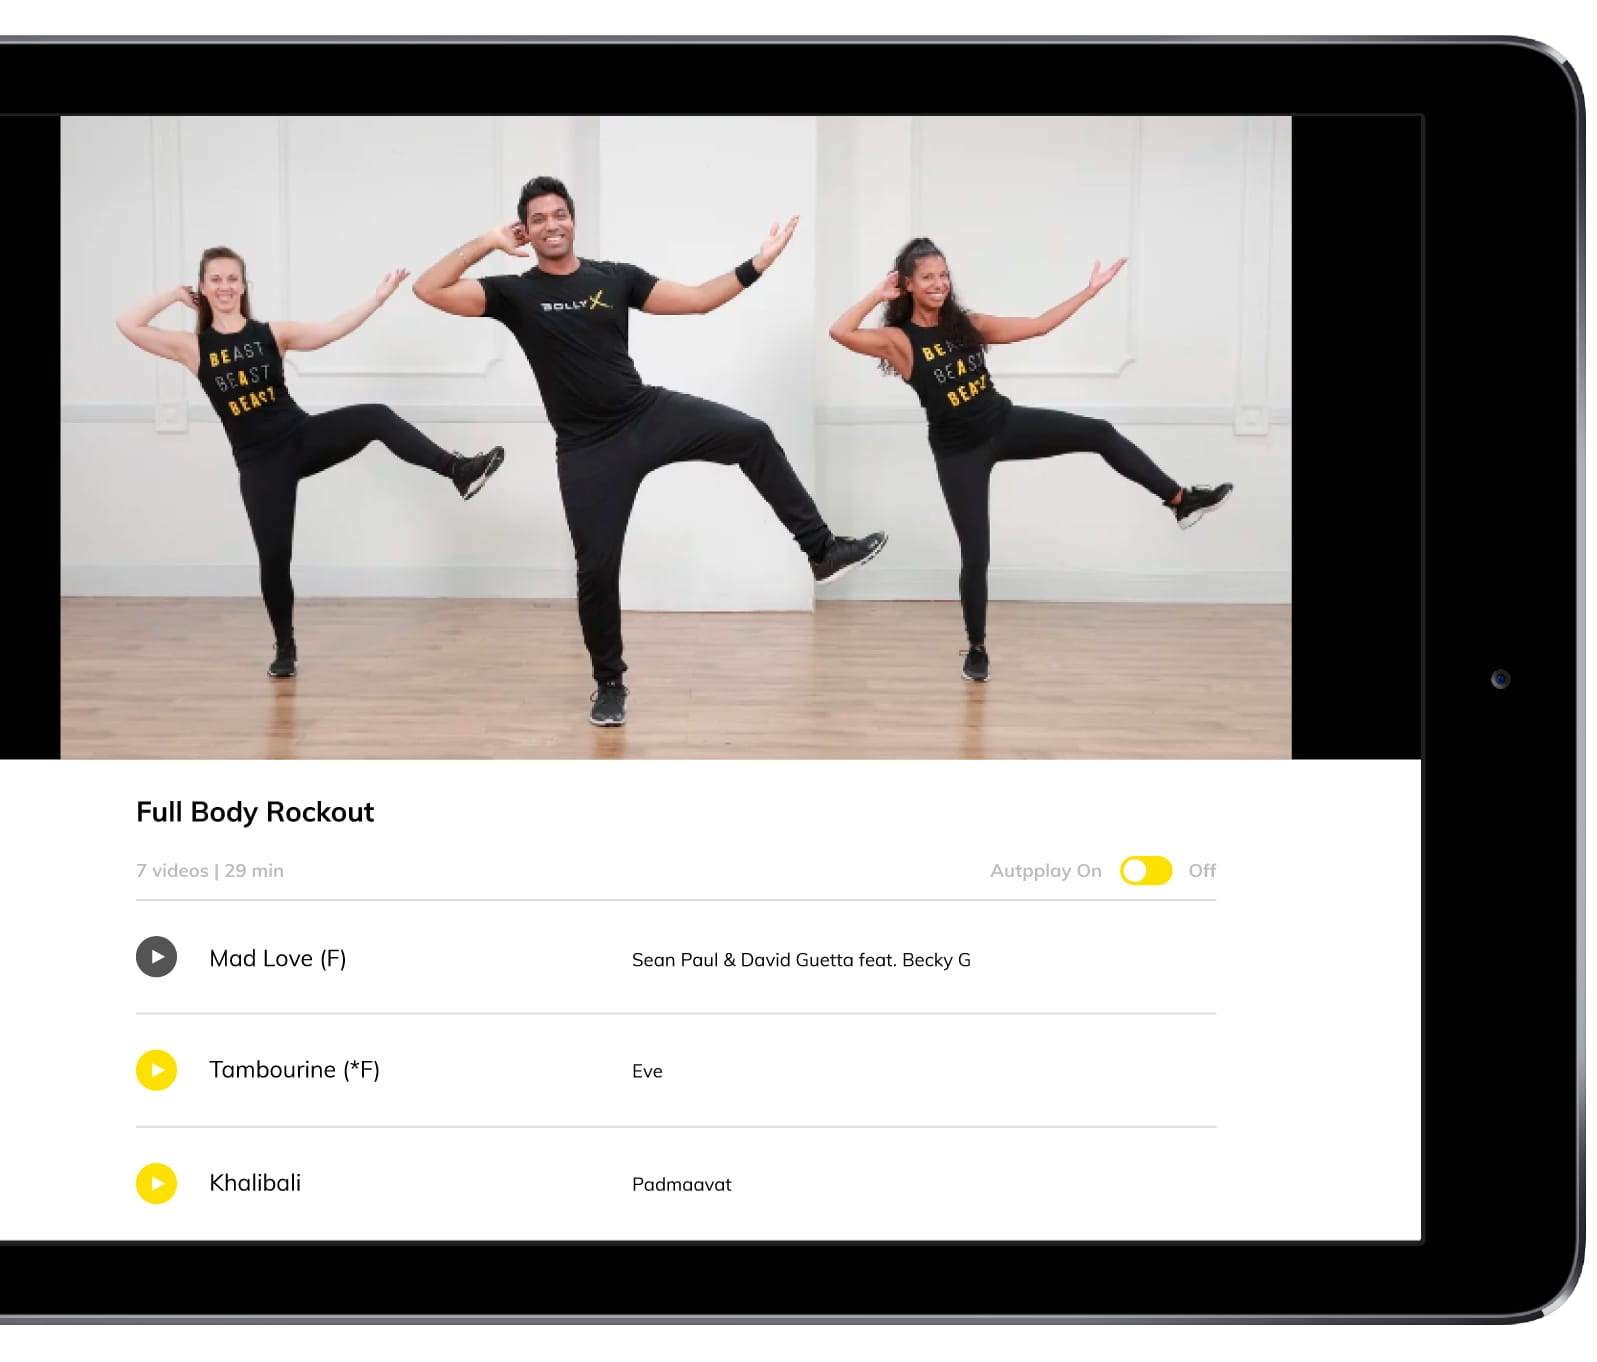 Bollywood Dance Fitness Workout - #BollyX